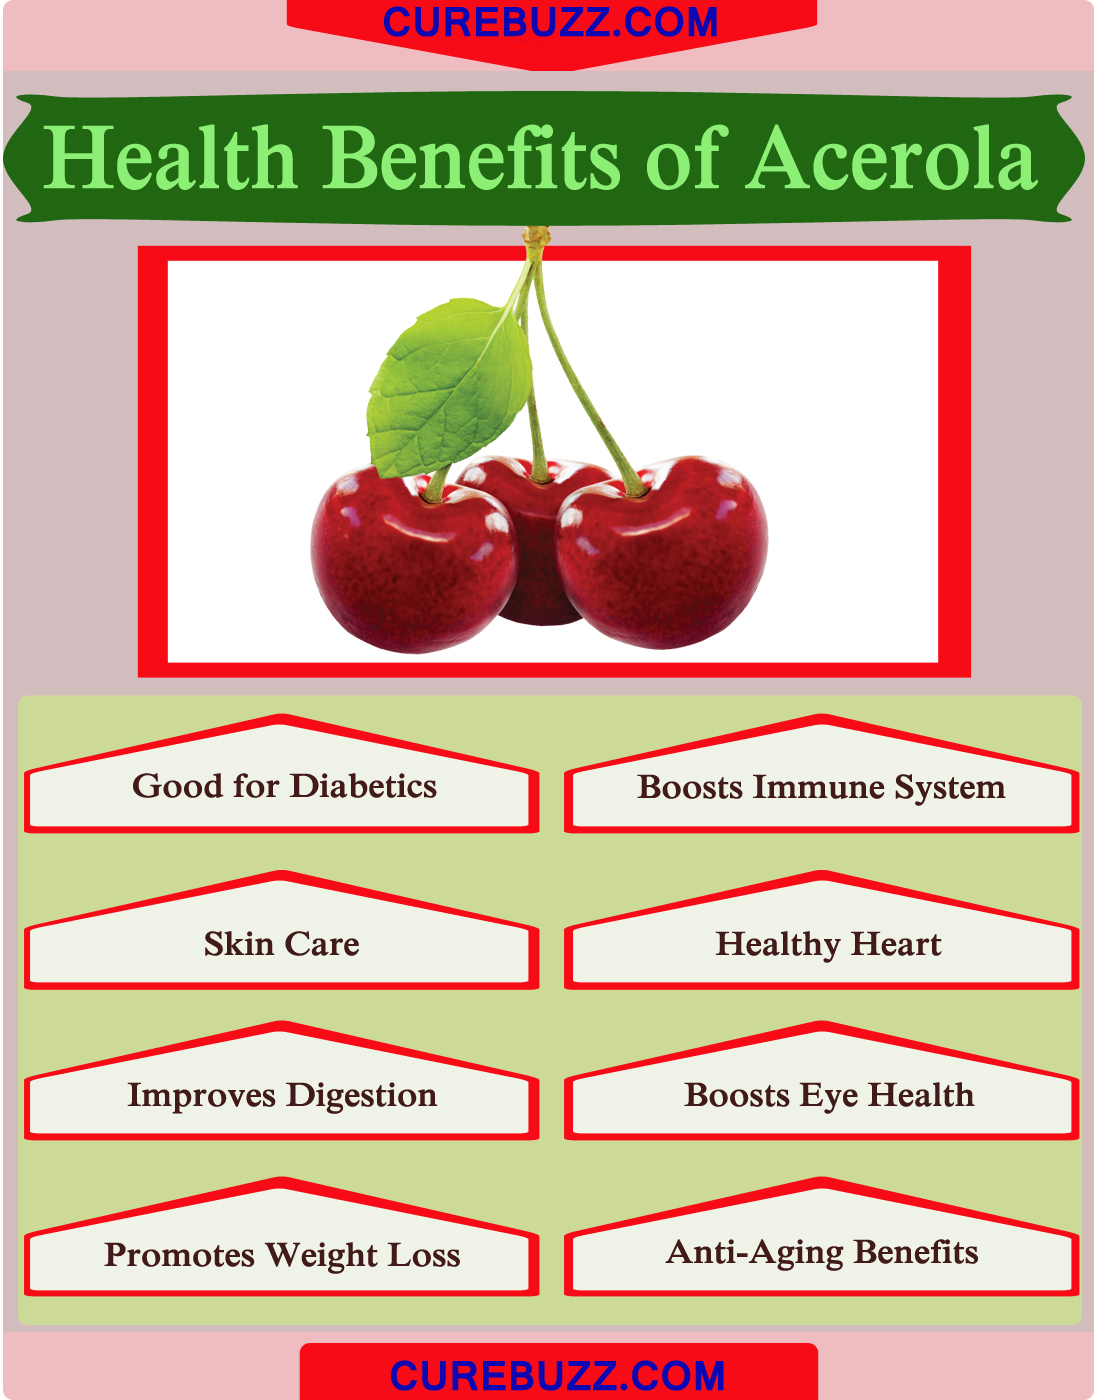 Health Benefits of Acerola